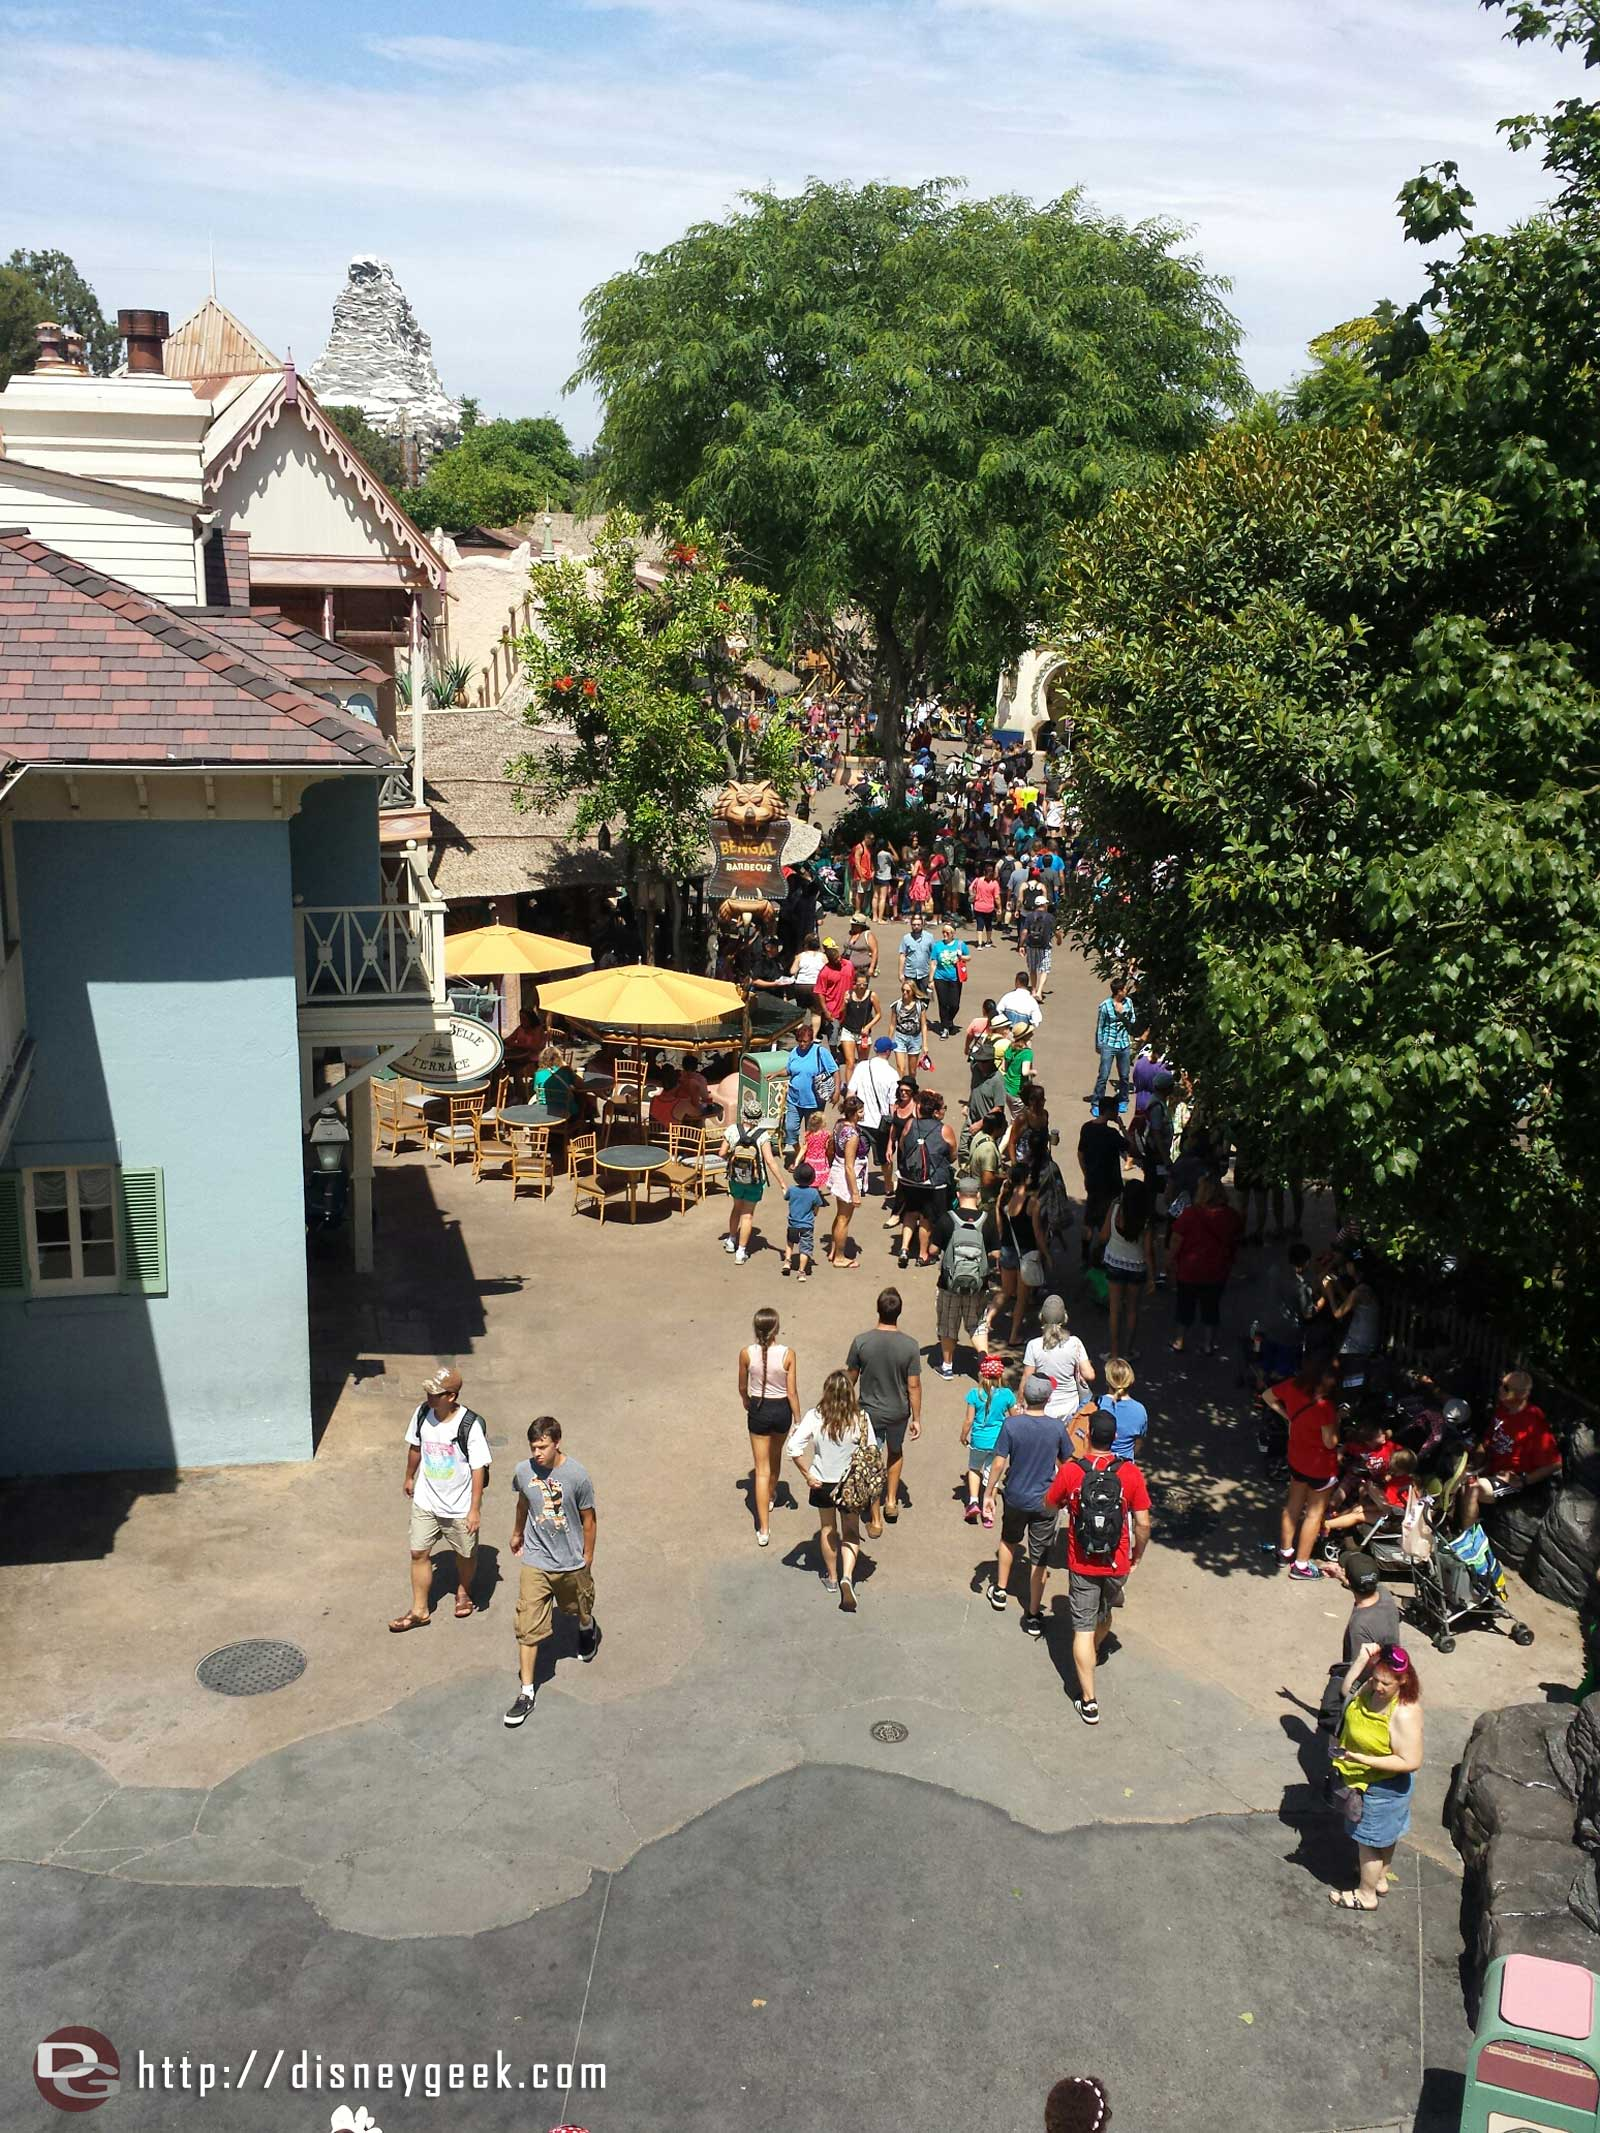 Adventureland from the tree house #Disneyland